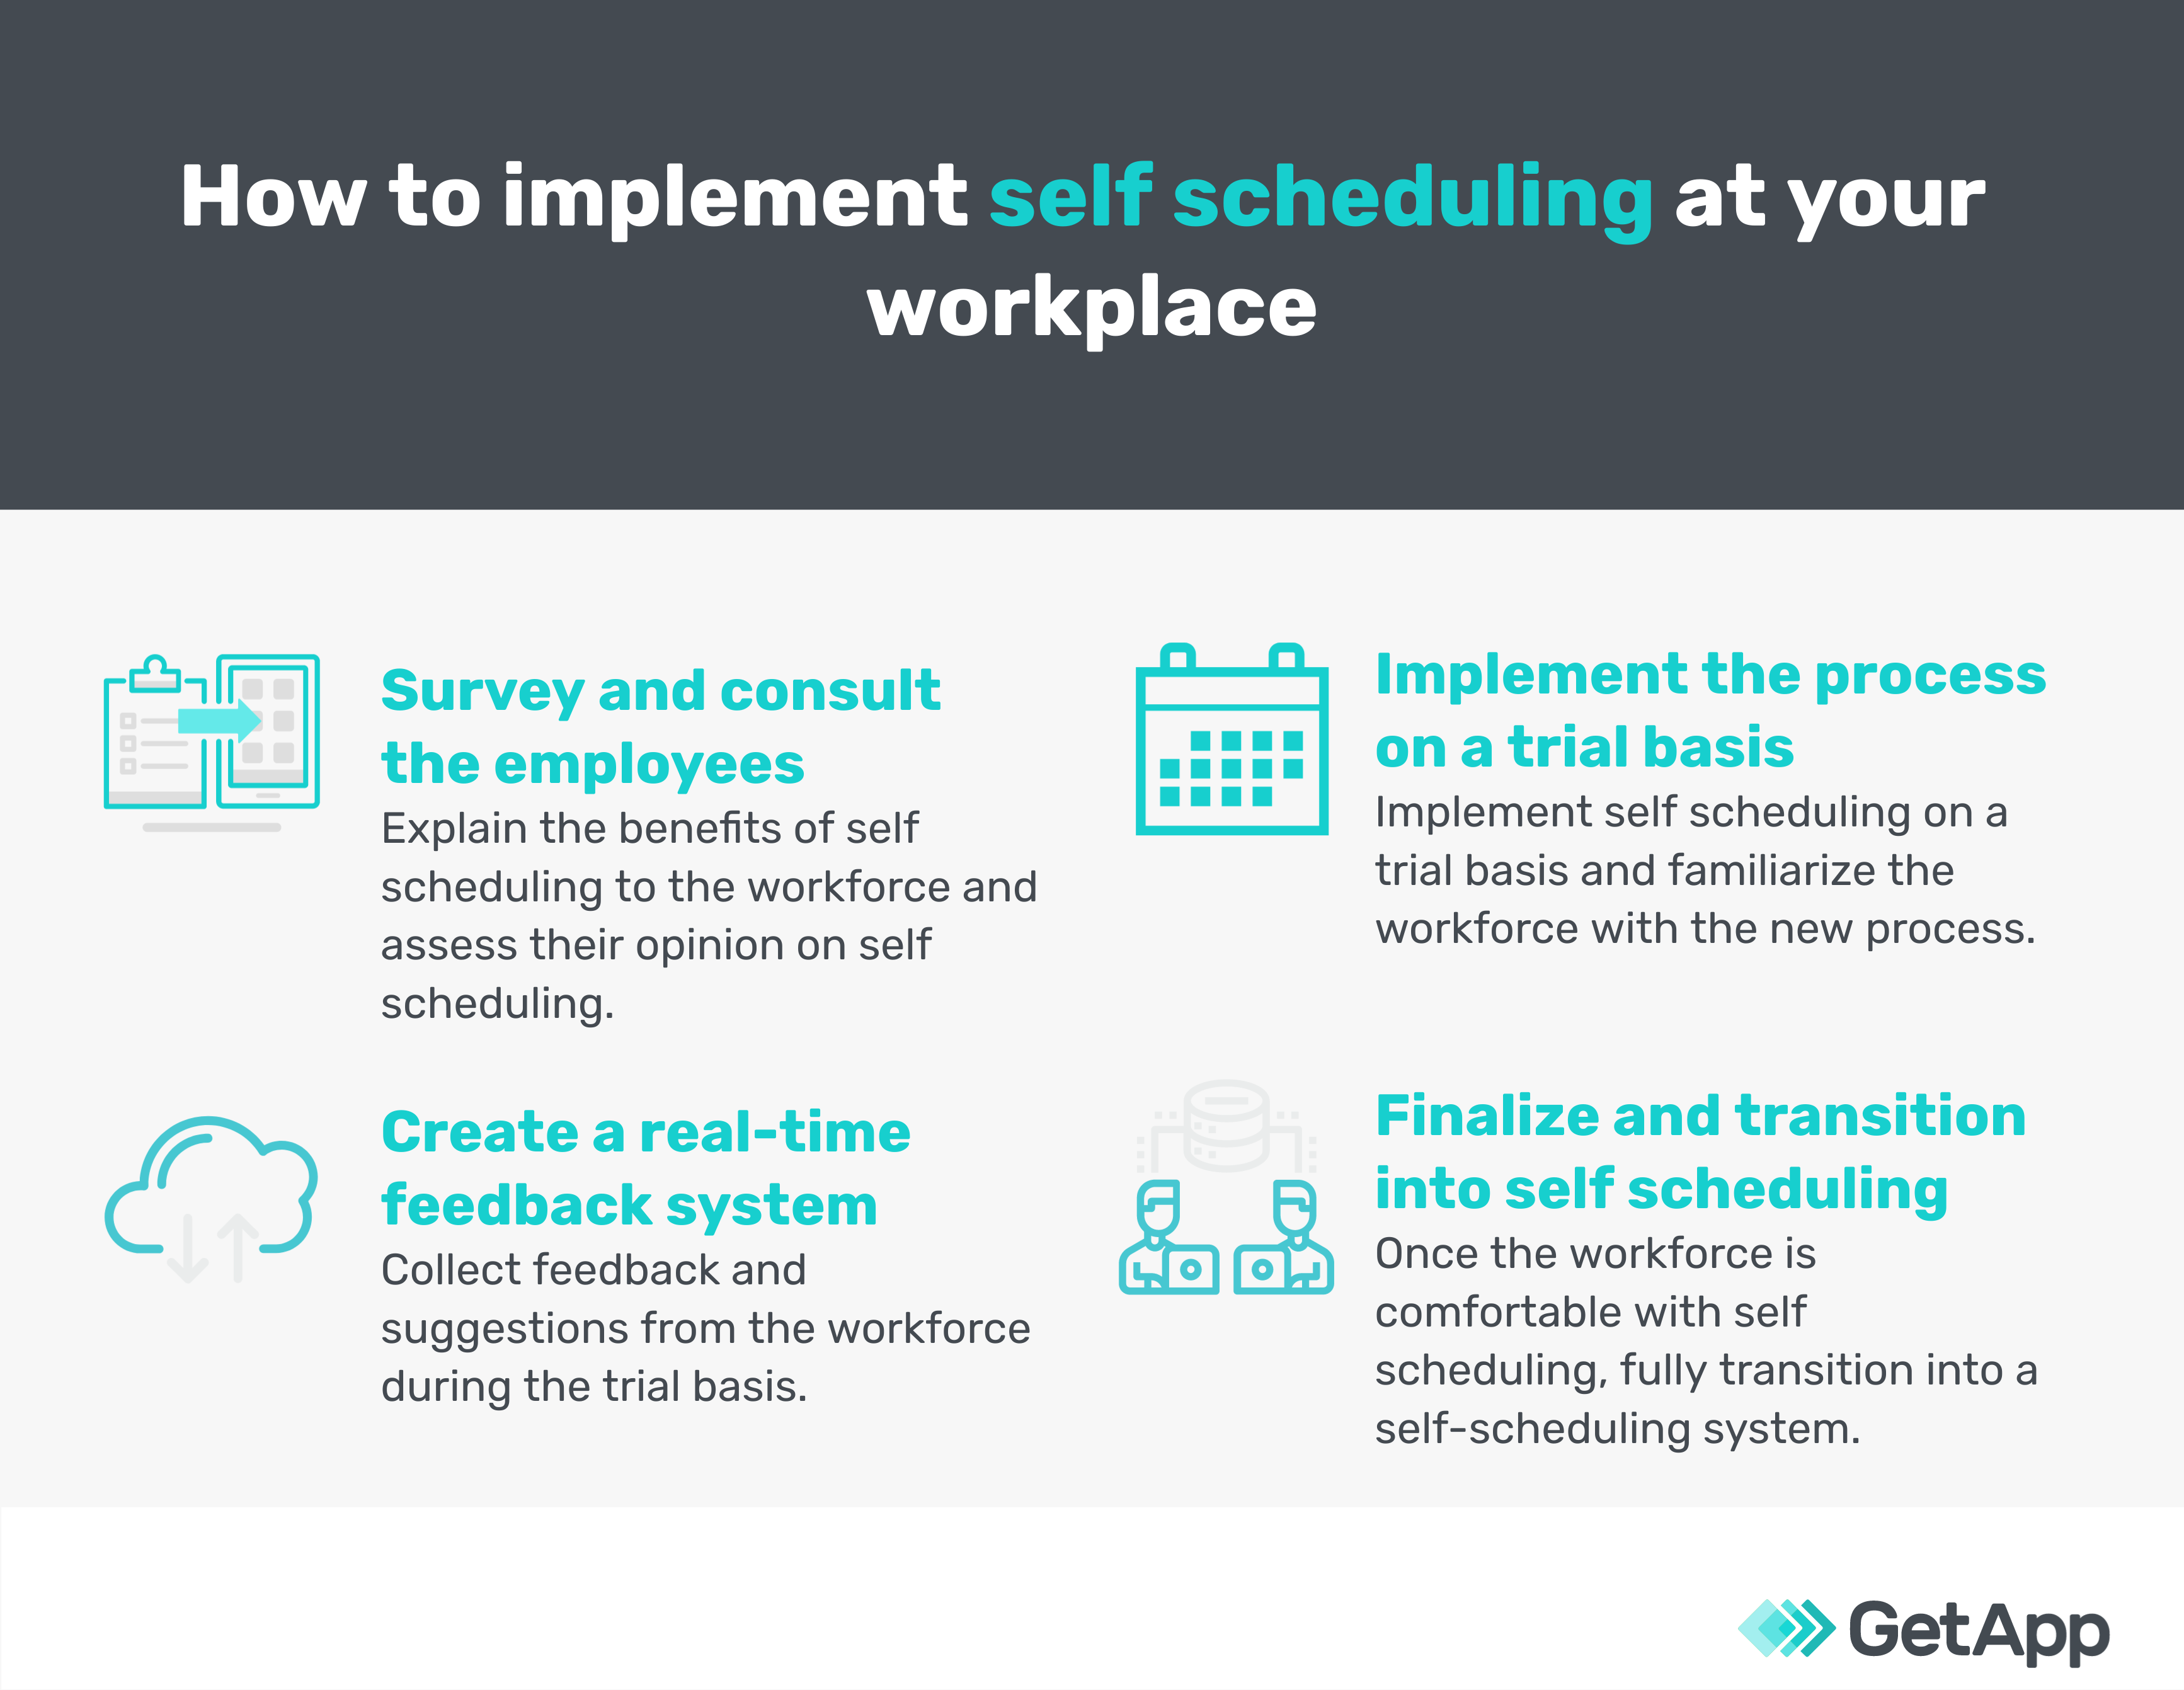 how to implement self scheduling at the workplace